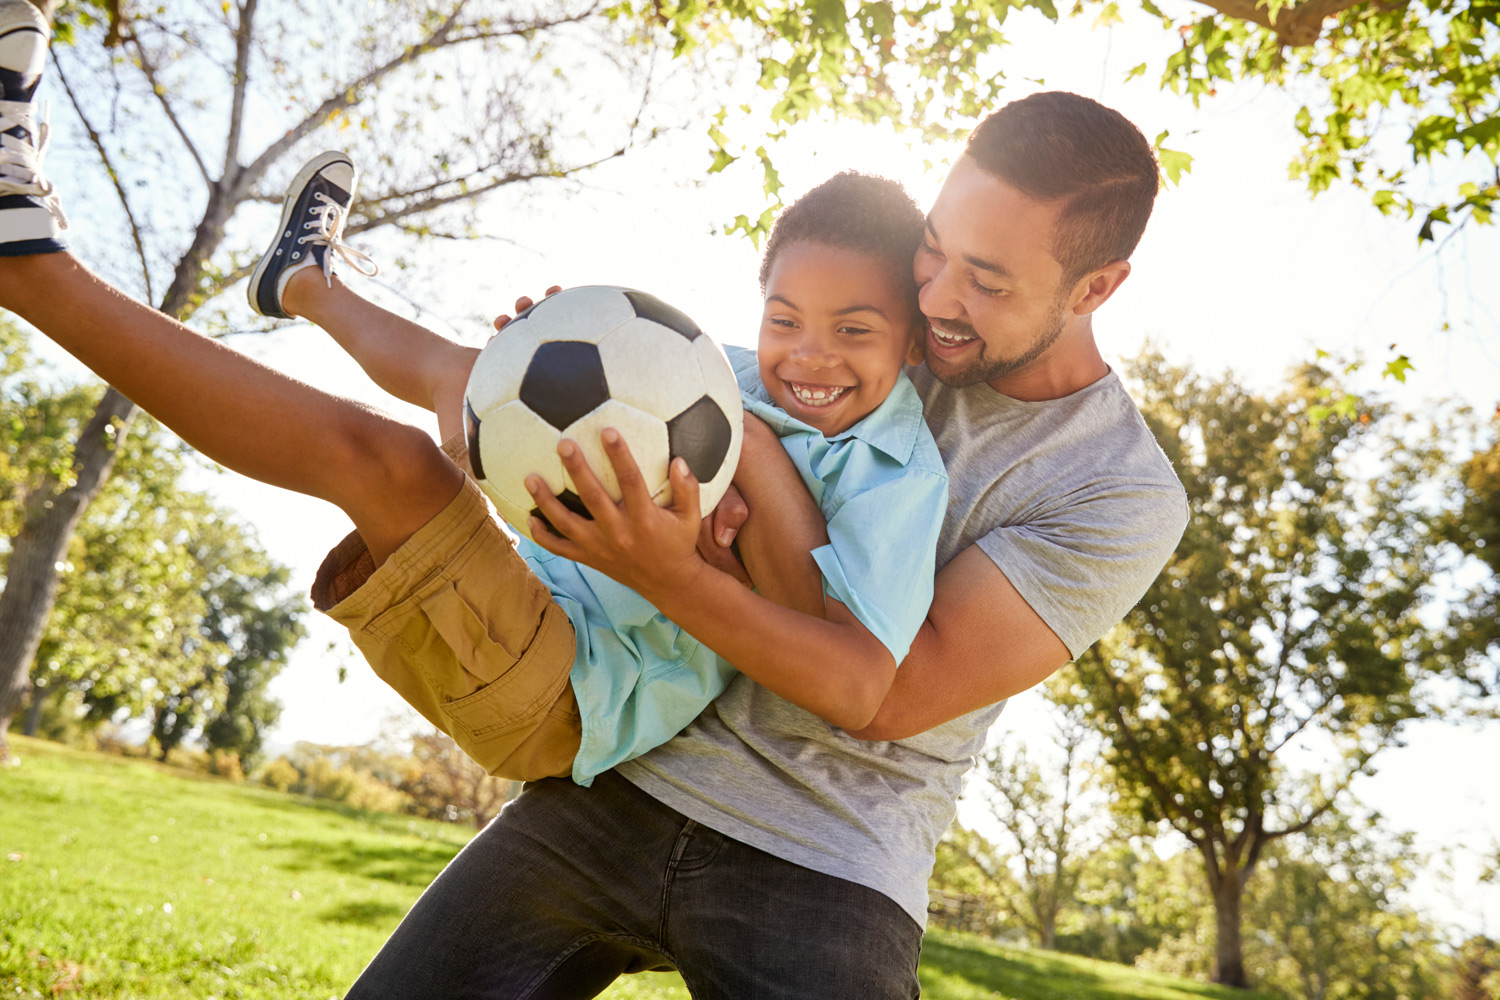 N-Father-and-son-playing-football.jpg